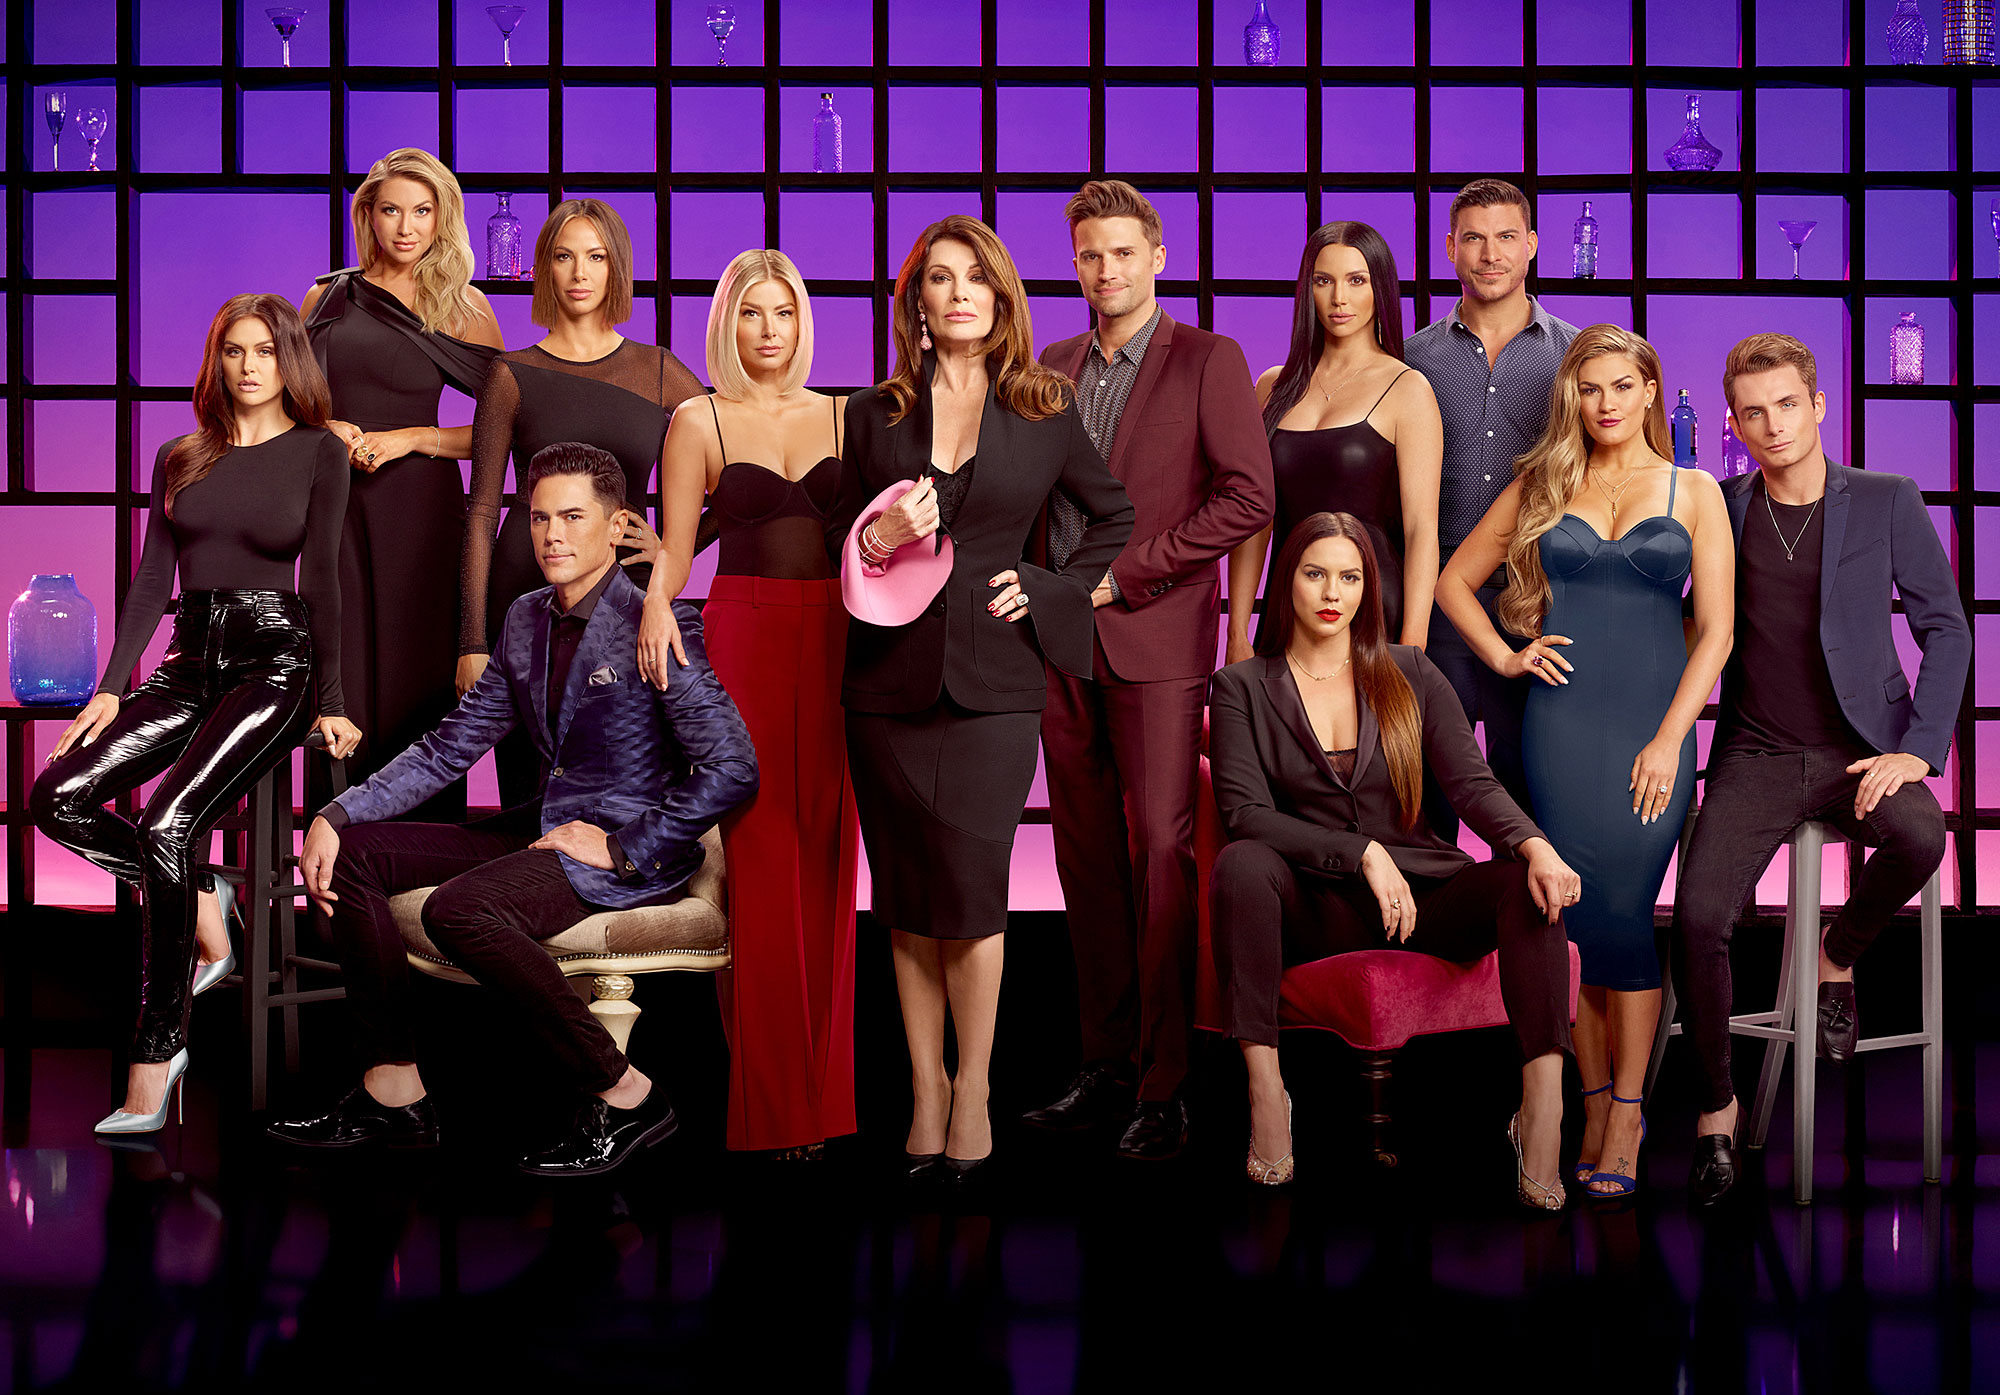 Vanderpump Rules Reunion Will Air as Planned Amid Stassi Schroeder and Kristen Doute Firings